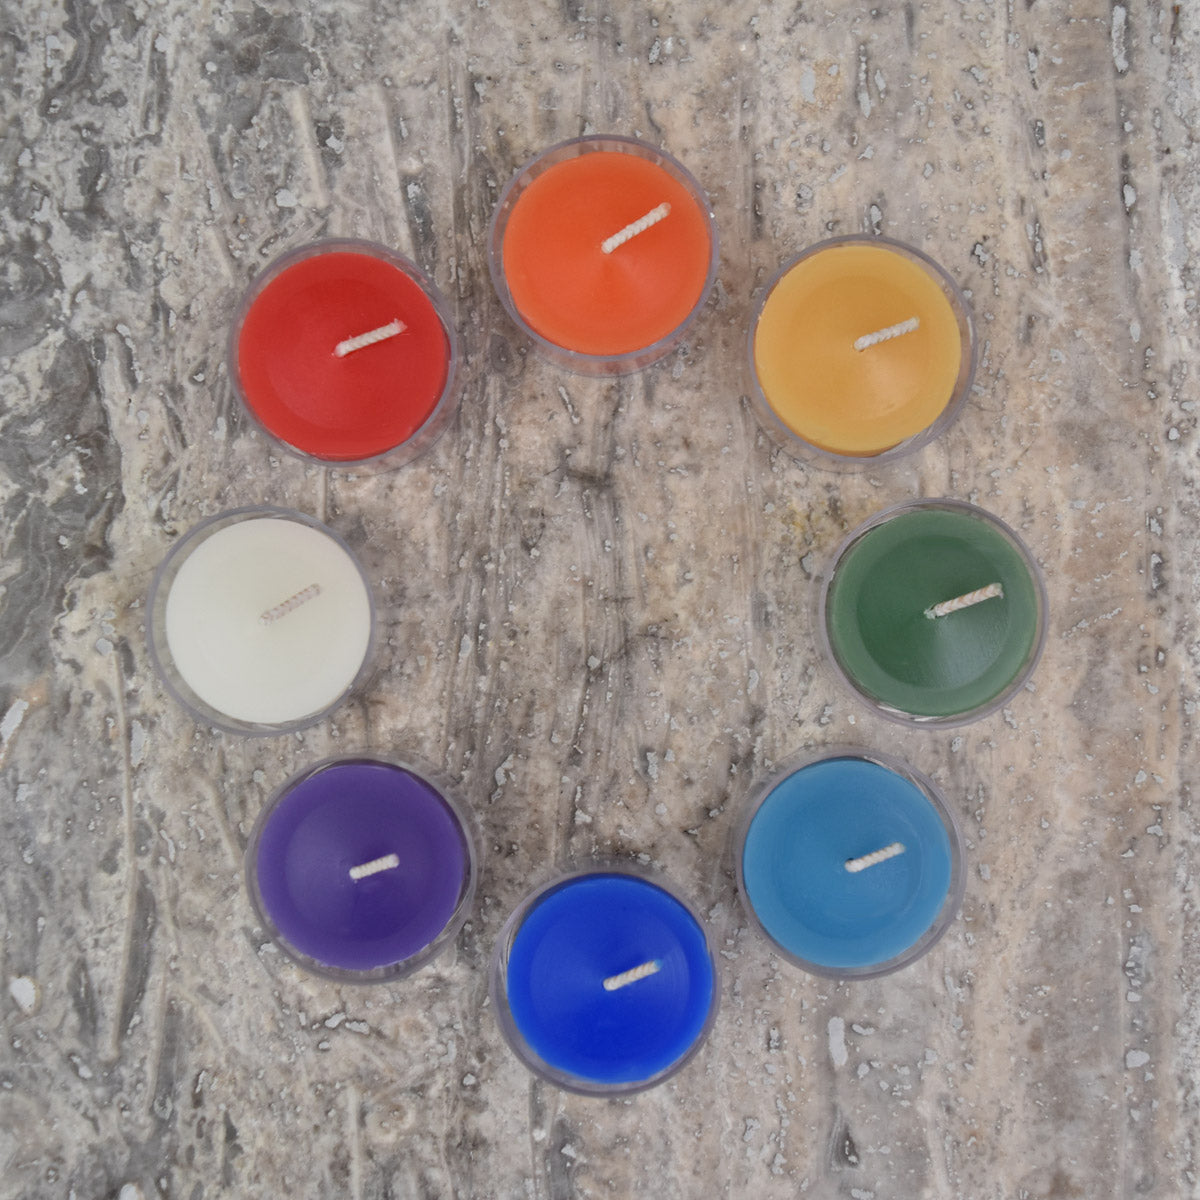 Rainbow beeswax tealights made with environmentally friendly dyes